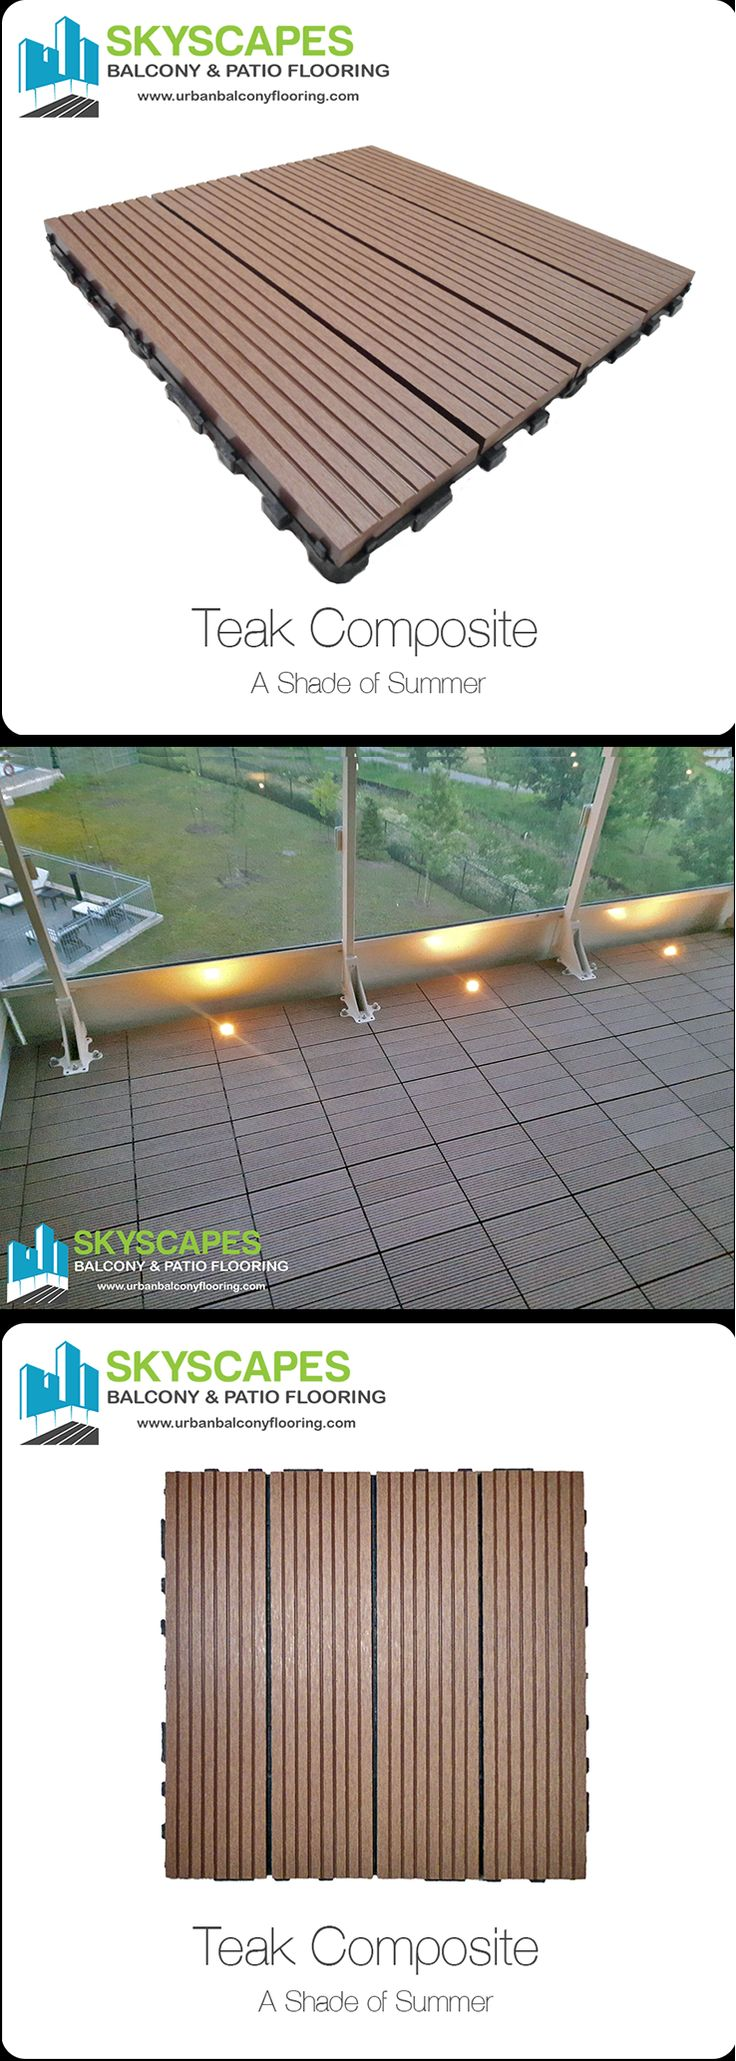 78 best balcony flooring balconies give us freedom images on condo balcony and terrace flooring tile ideas teak composite wpc outdoor floor tile by skyscapes dailygadgetfo Images